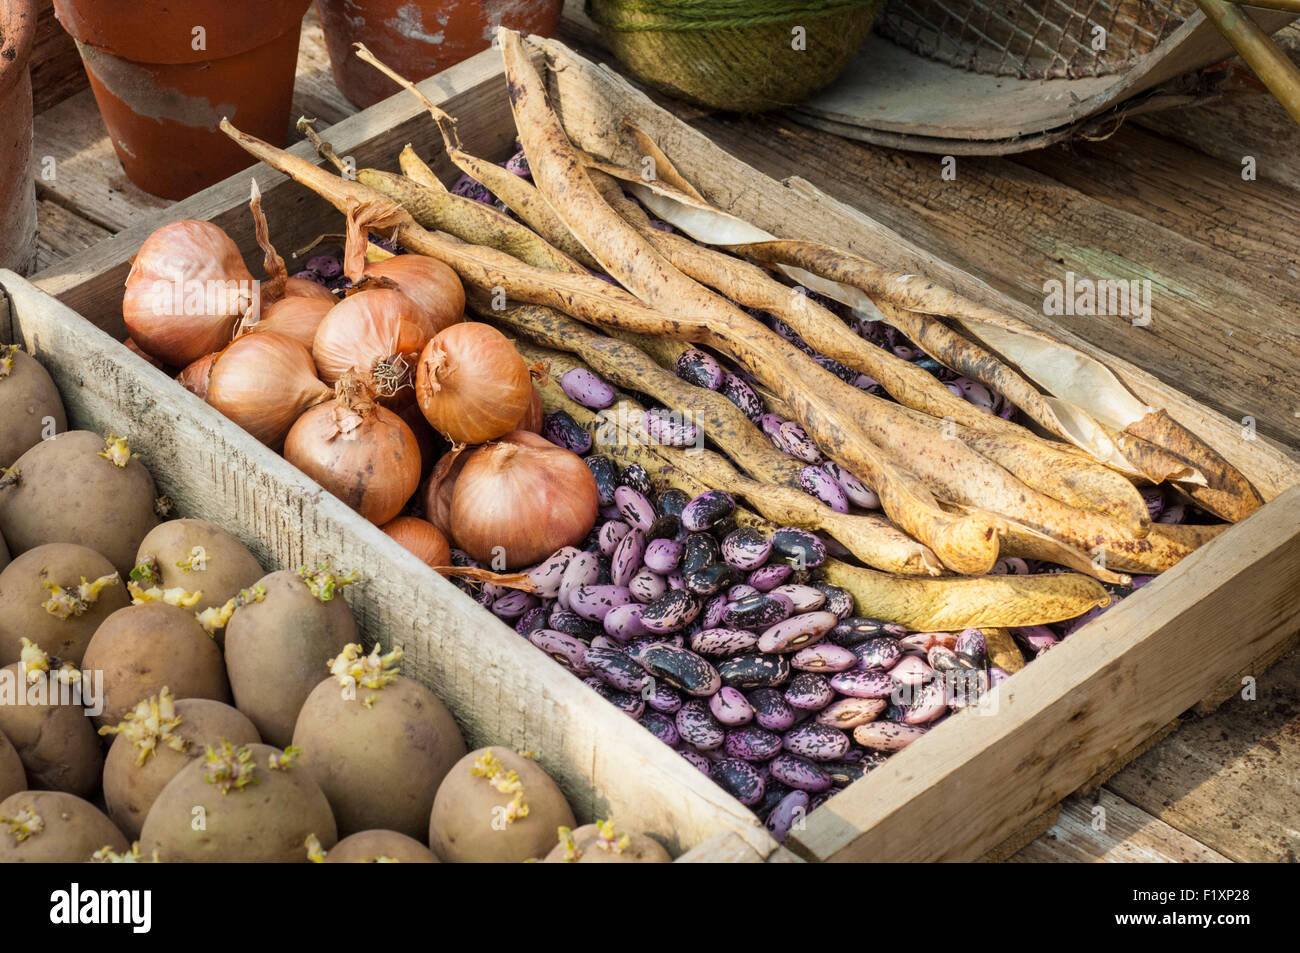 Garden lifestyle still life arrangement. seed potatoes shallots and onions. - Stock Image